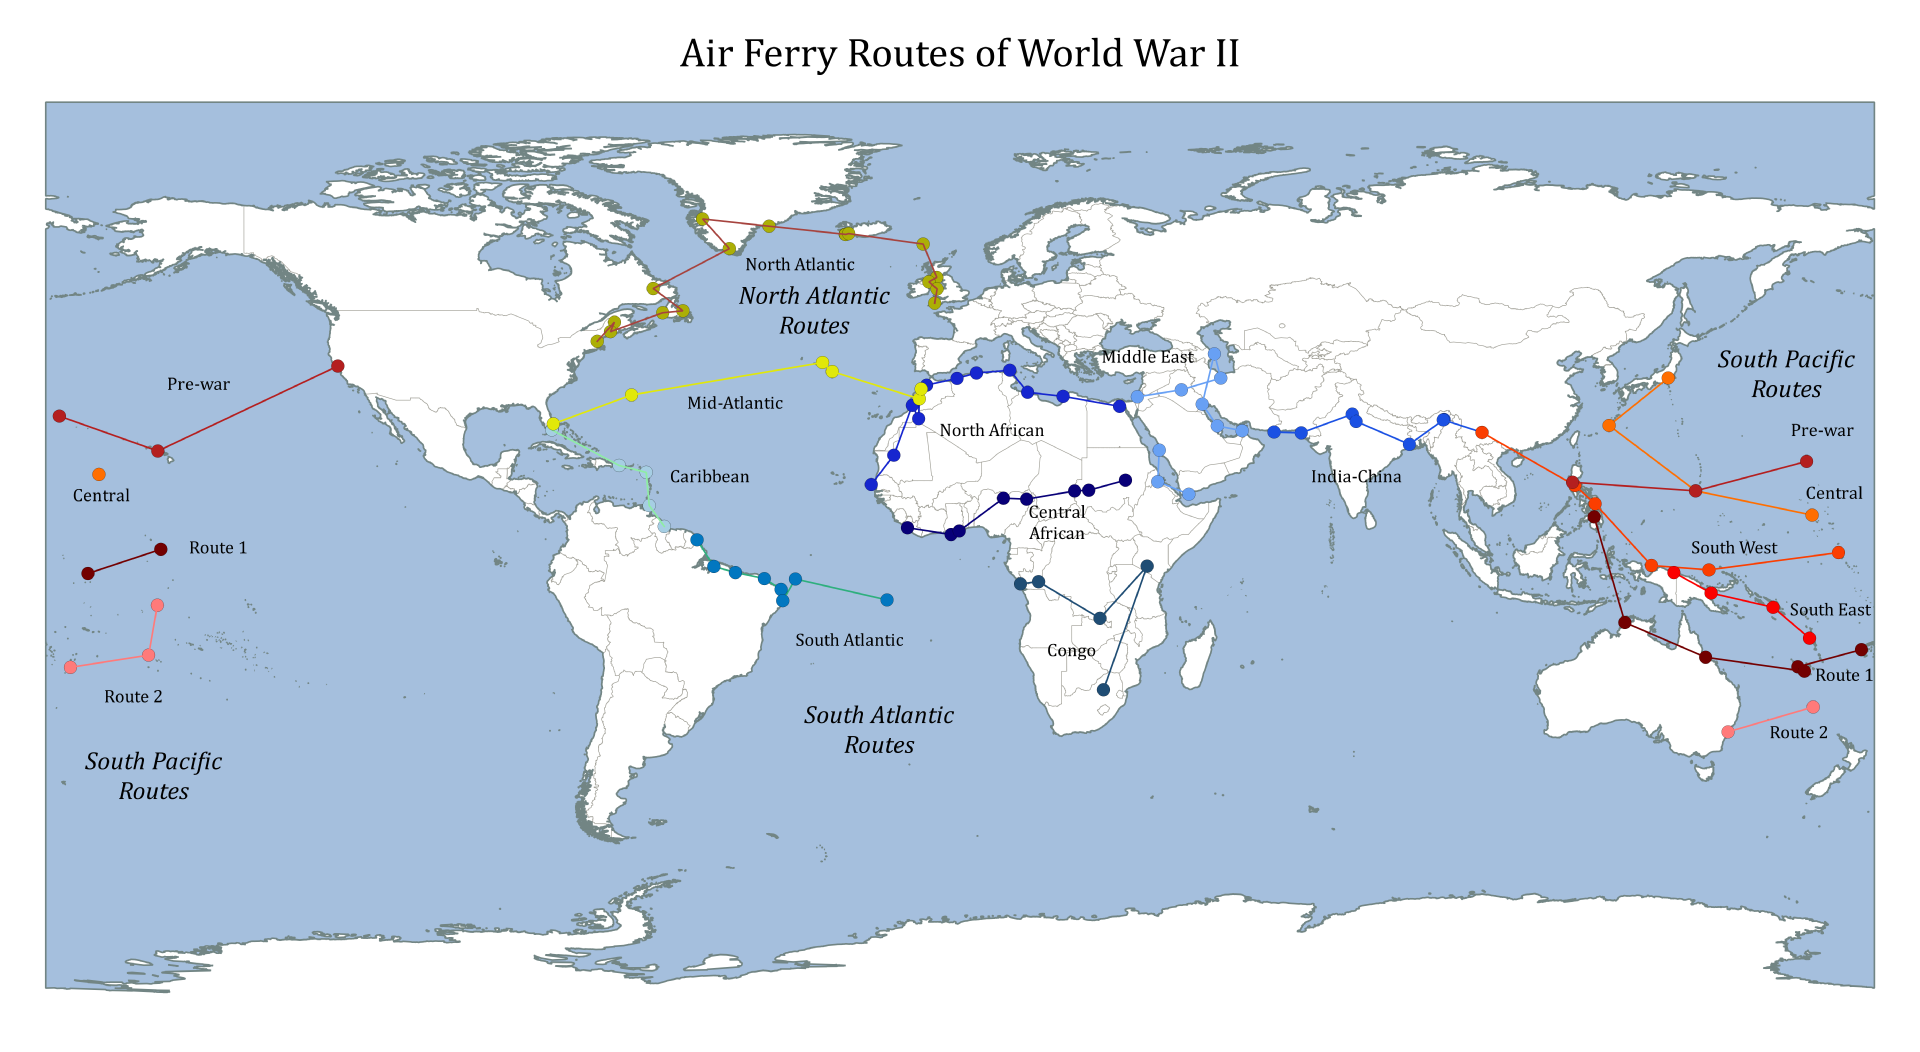 Airferryroutesofwwii north atlantic air ferry route in world war airferryroutesofwwii north atlantic air ferry route in world war ii wikipedia gumiabroncs Image collections